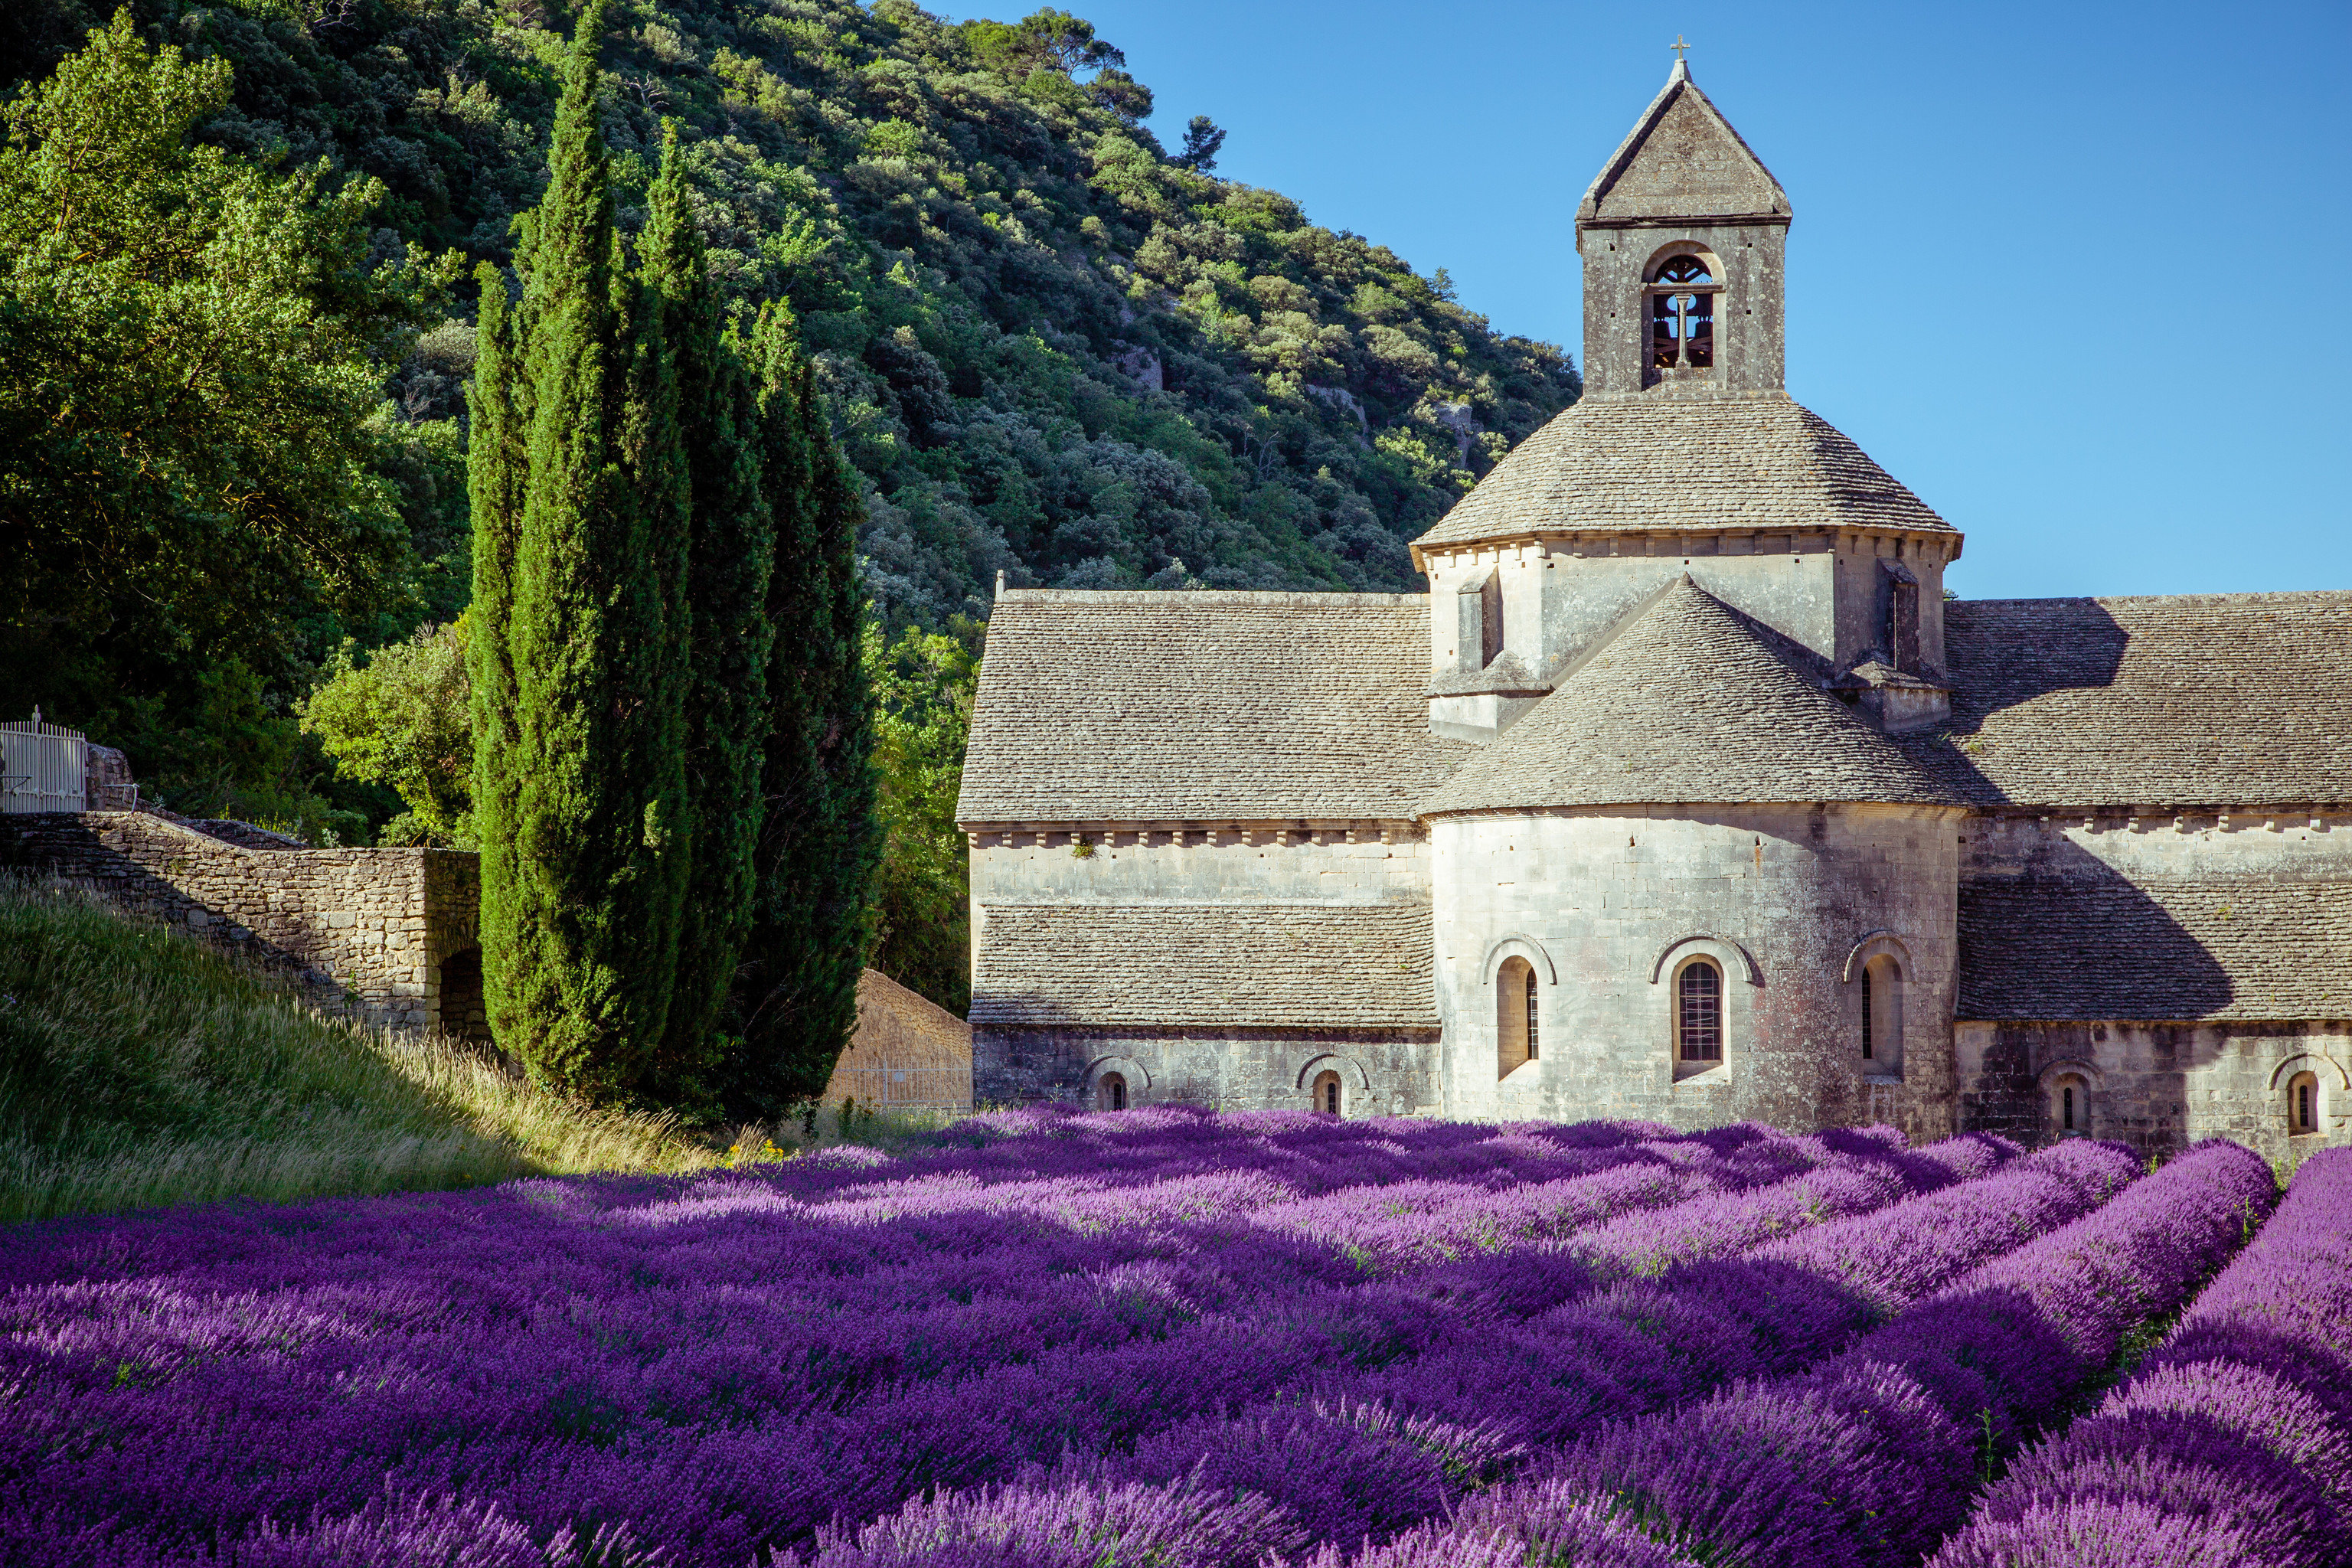 Trip Ideas grass tree outdoor flower building plant rural area stone Garden monastery place of worship